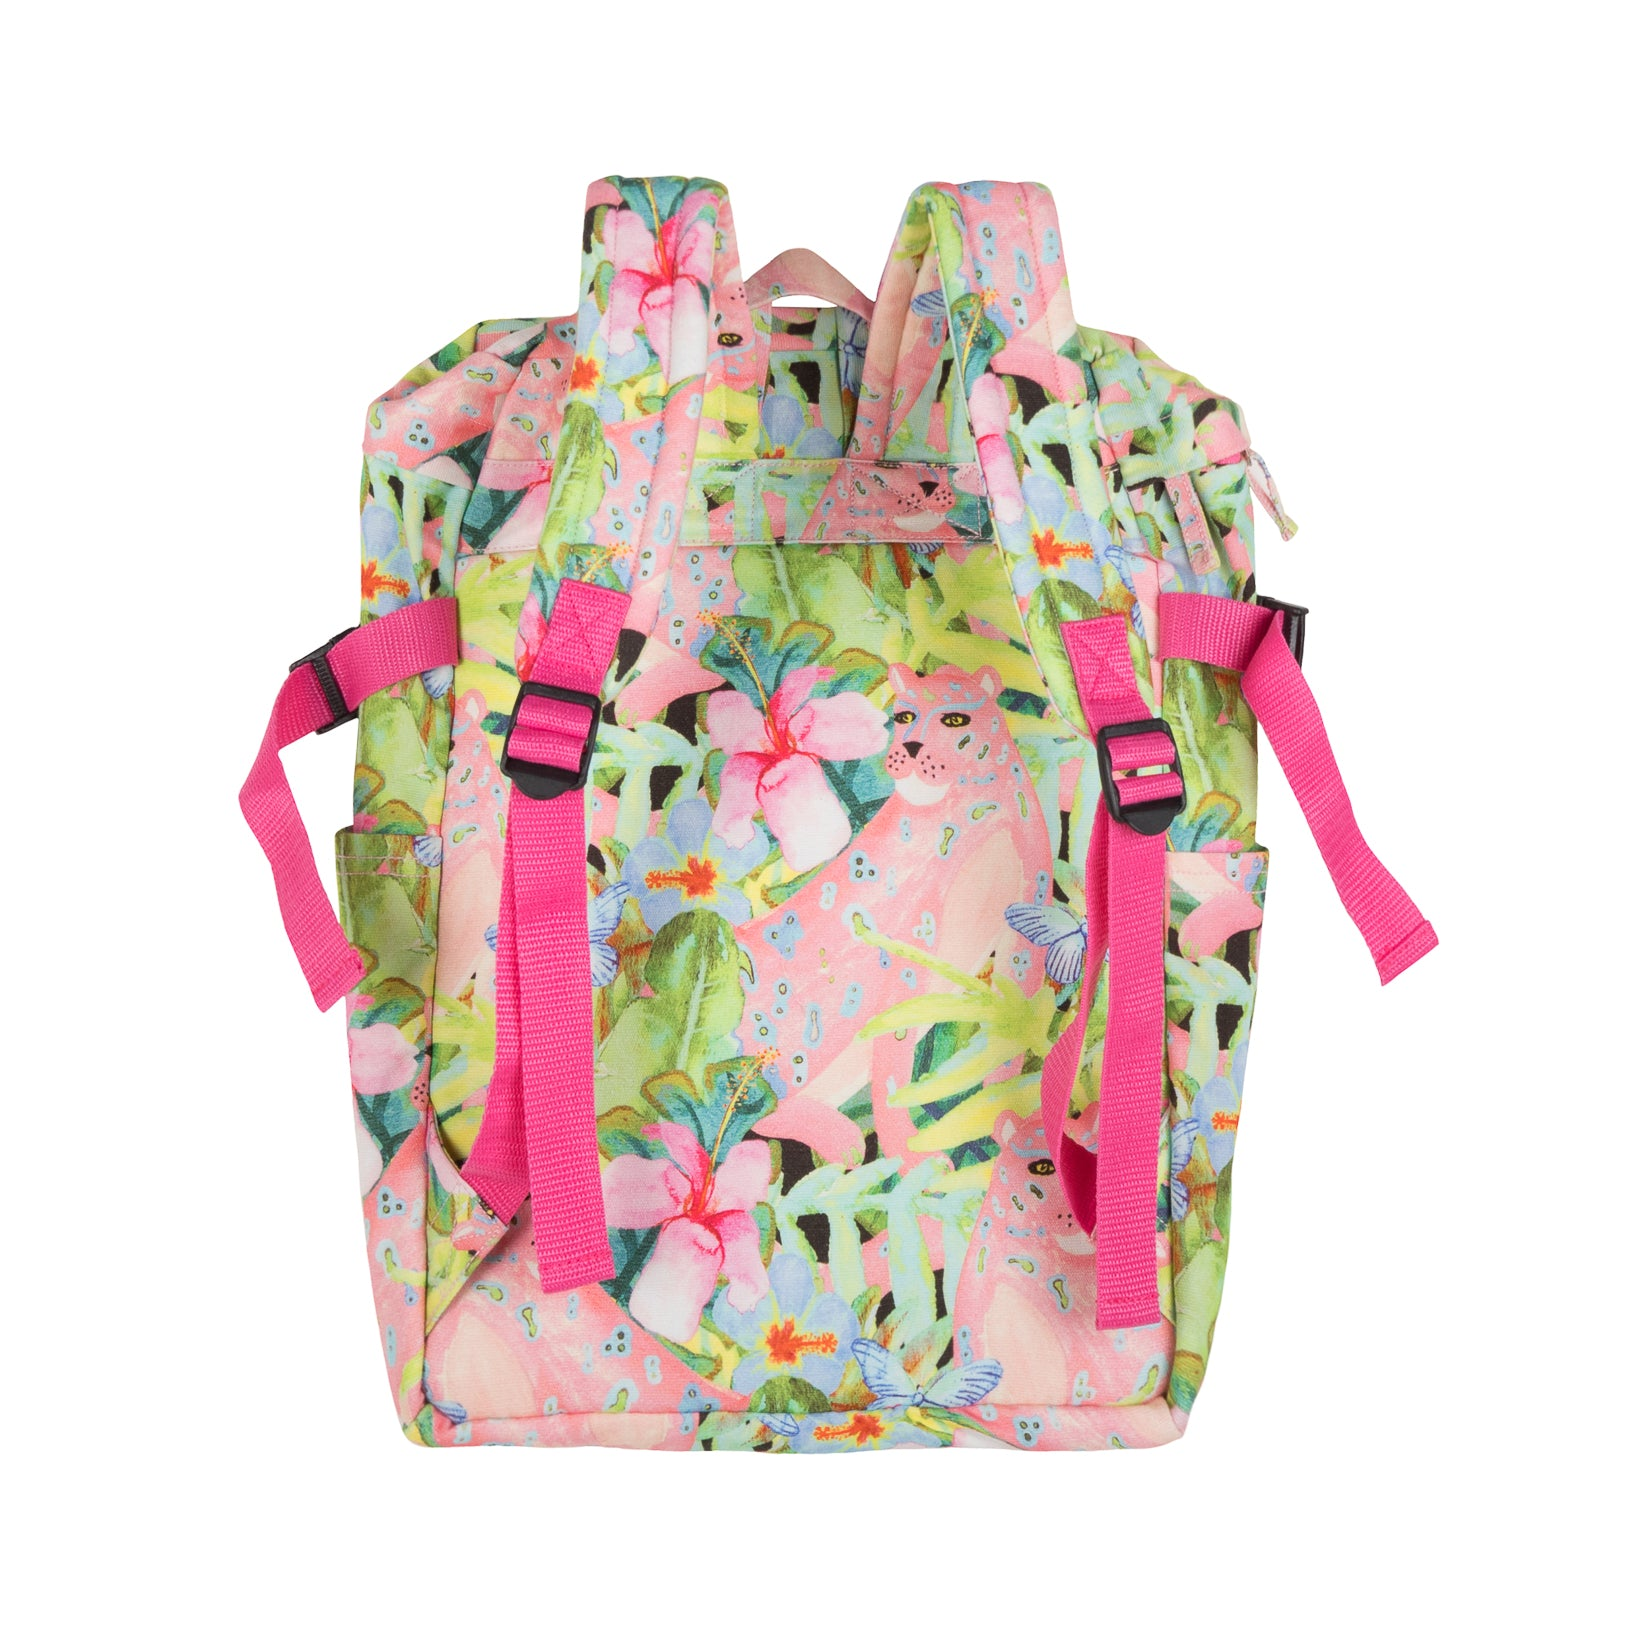 Paper Wings Compact Backpack - Pink Leopard